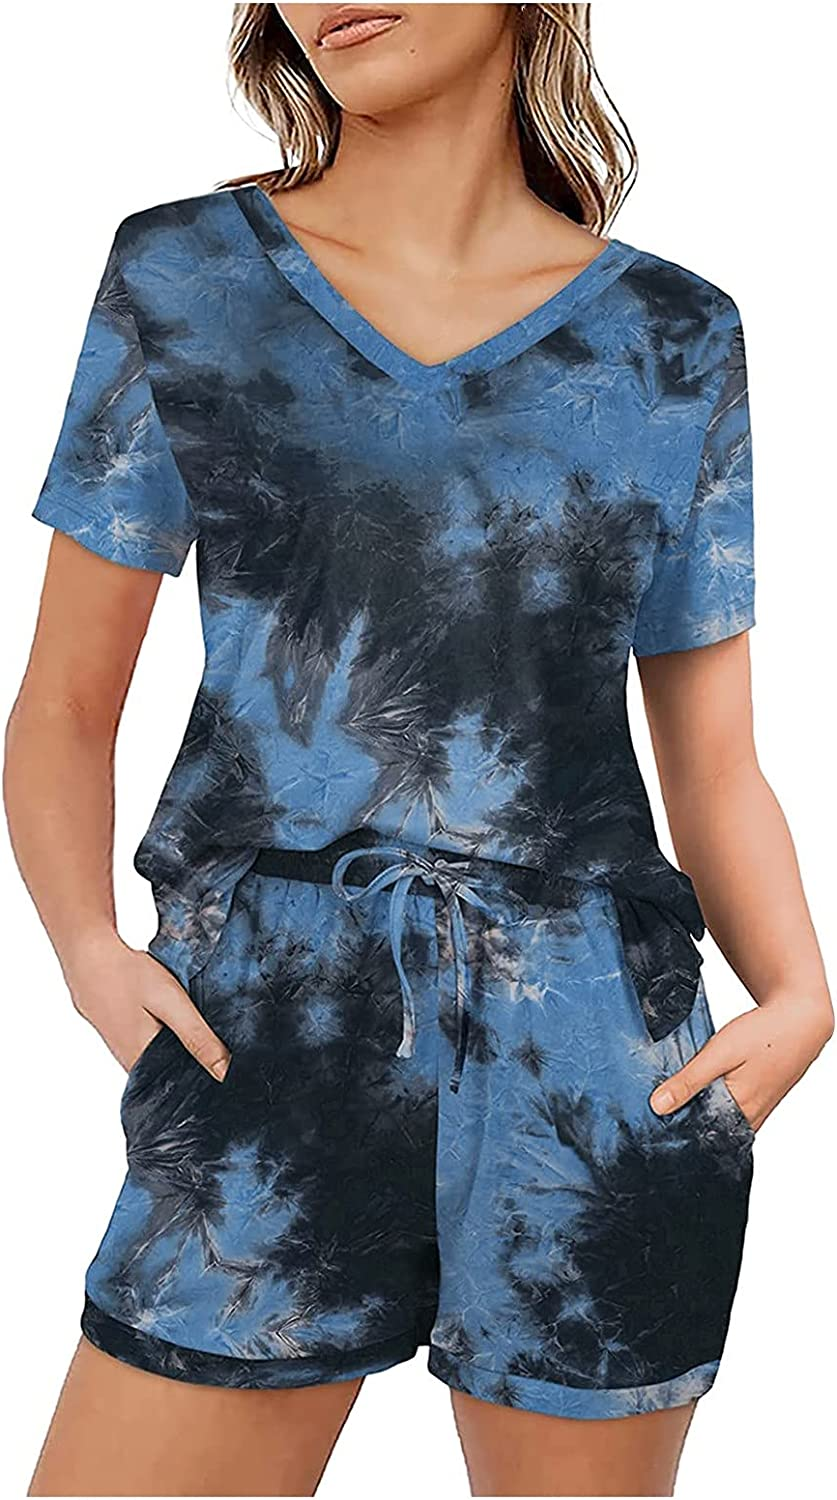 XinantimeWomen's Sportswear Tie-Dye V-Neck Short Sleeve Blouse and Elastic Waist Shorts with Pockets Two-Piece Suit Set